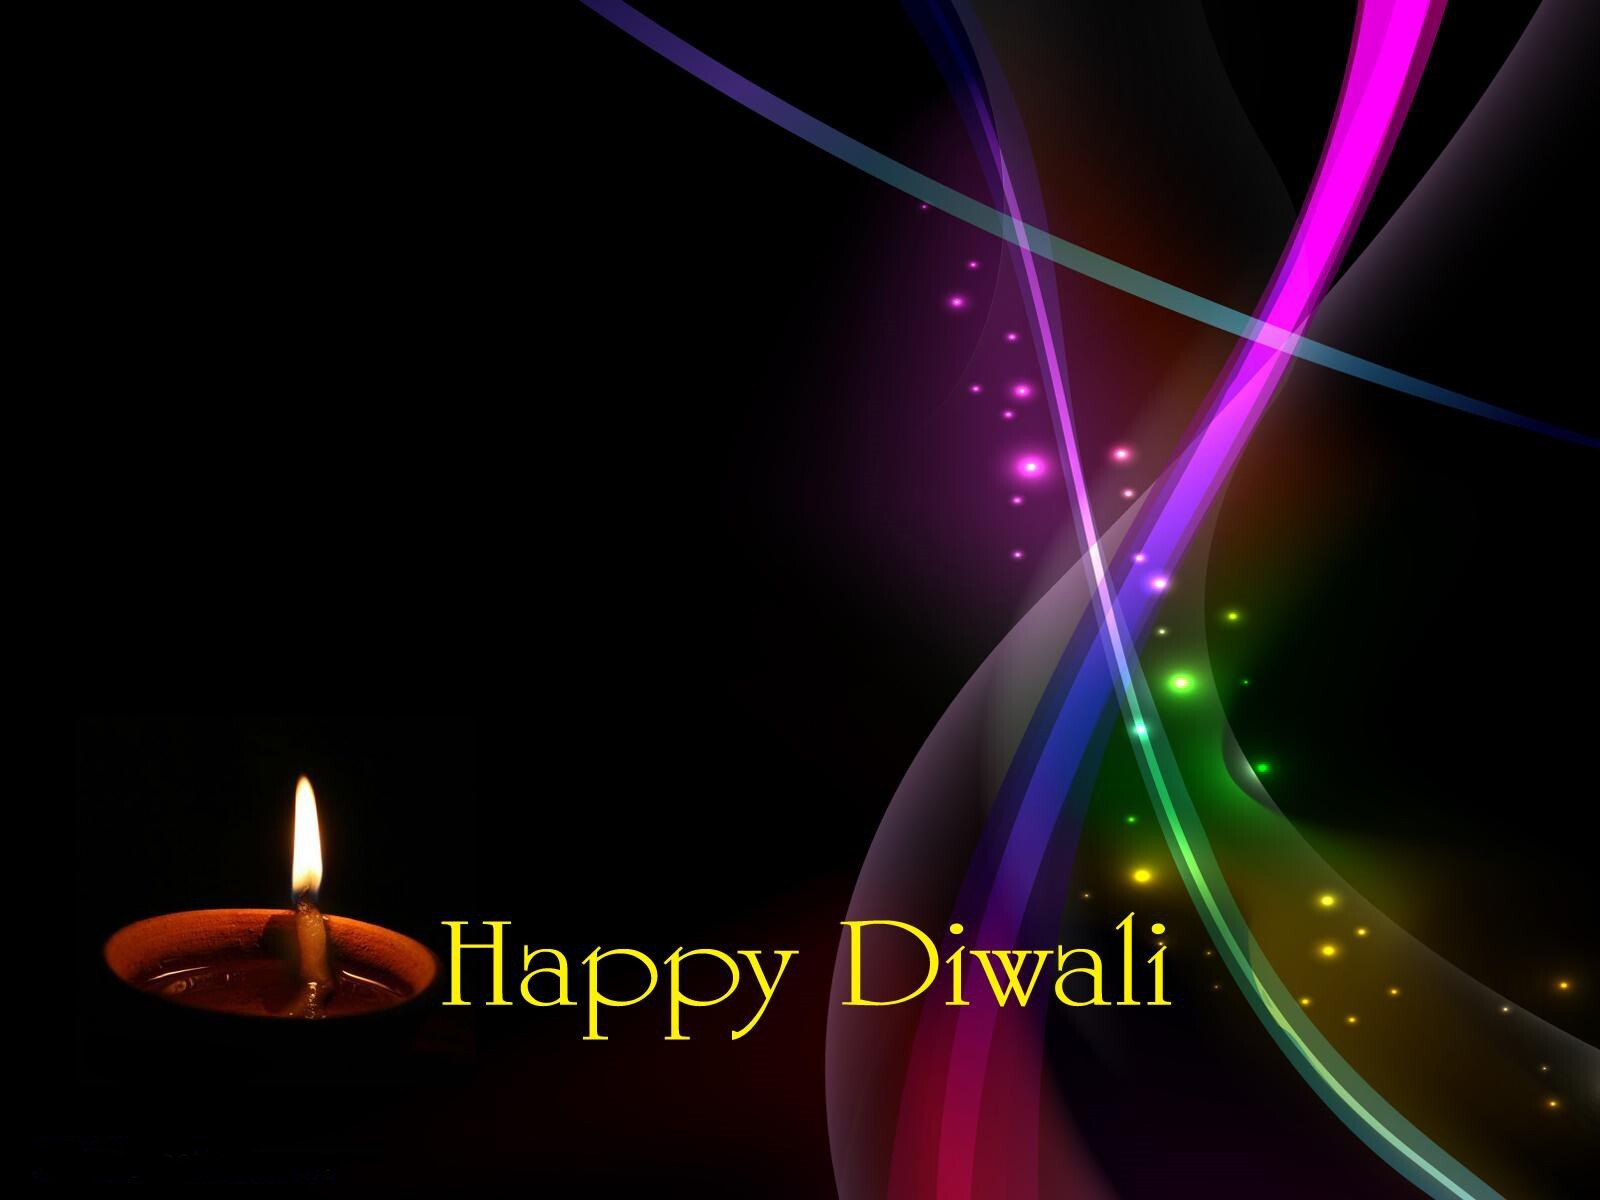 Happy Diwali Rainbow Color Collection 2013 Wallpaper